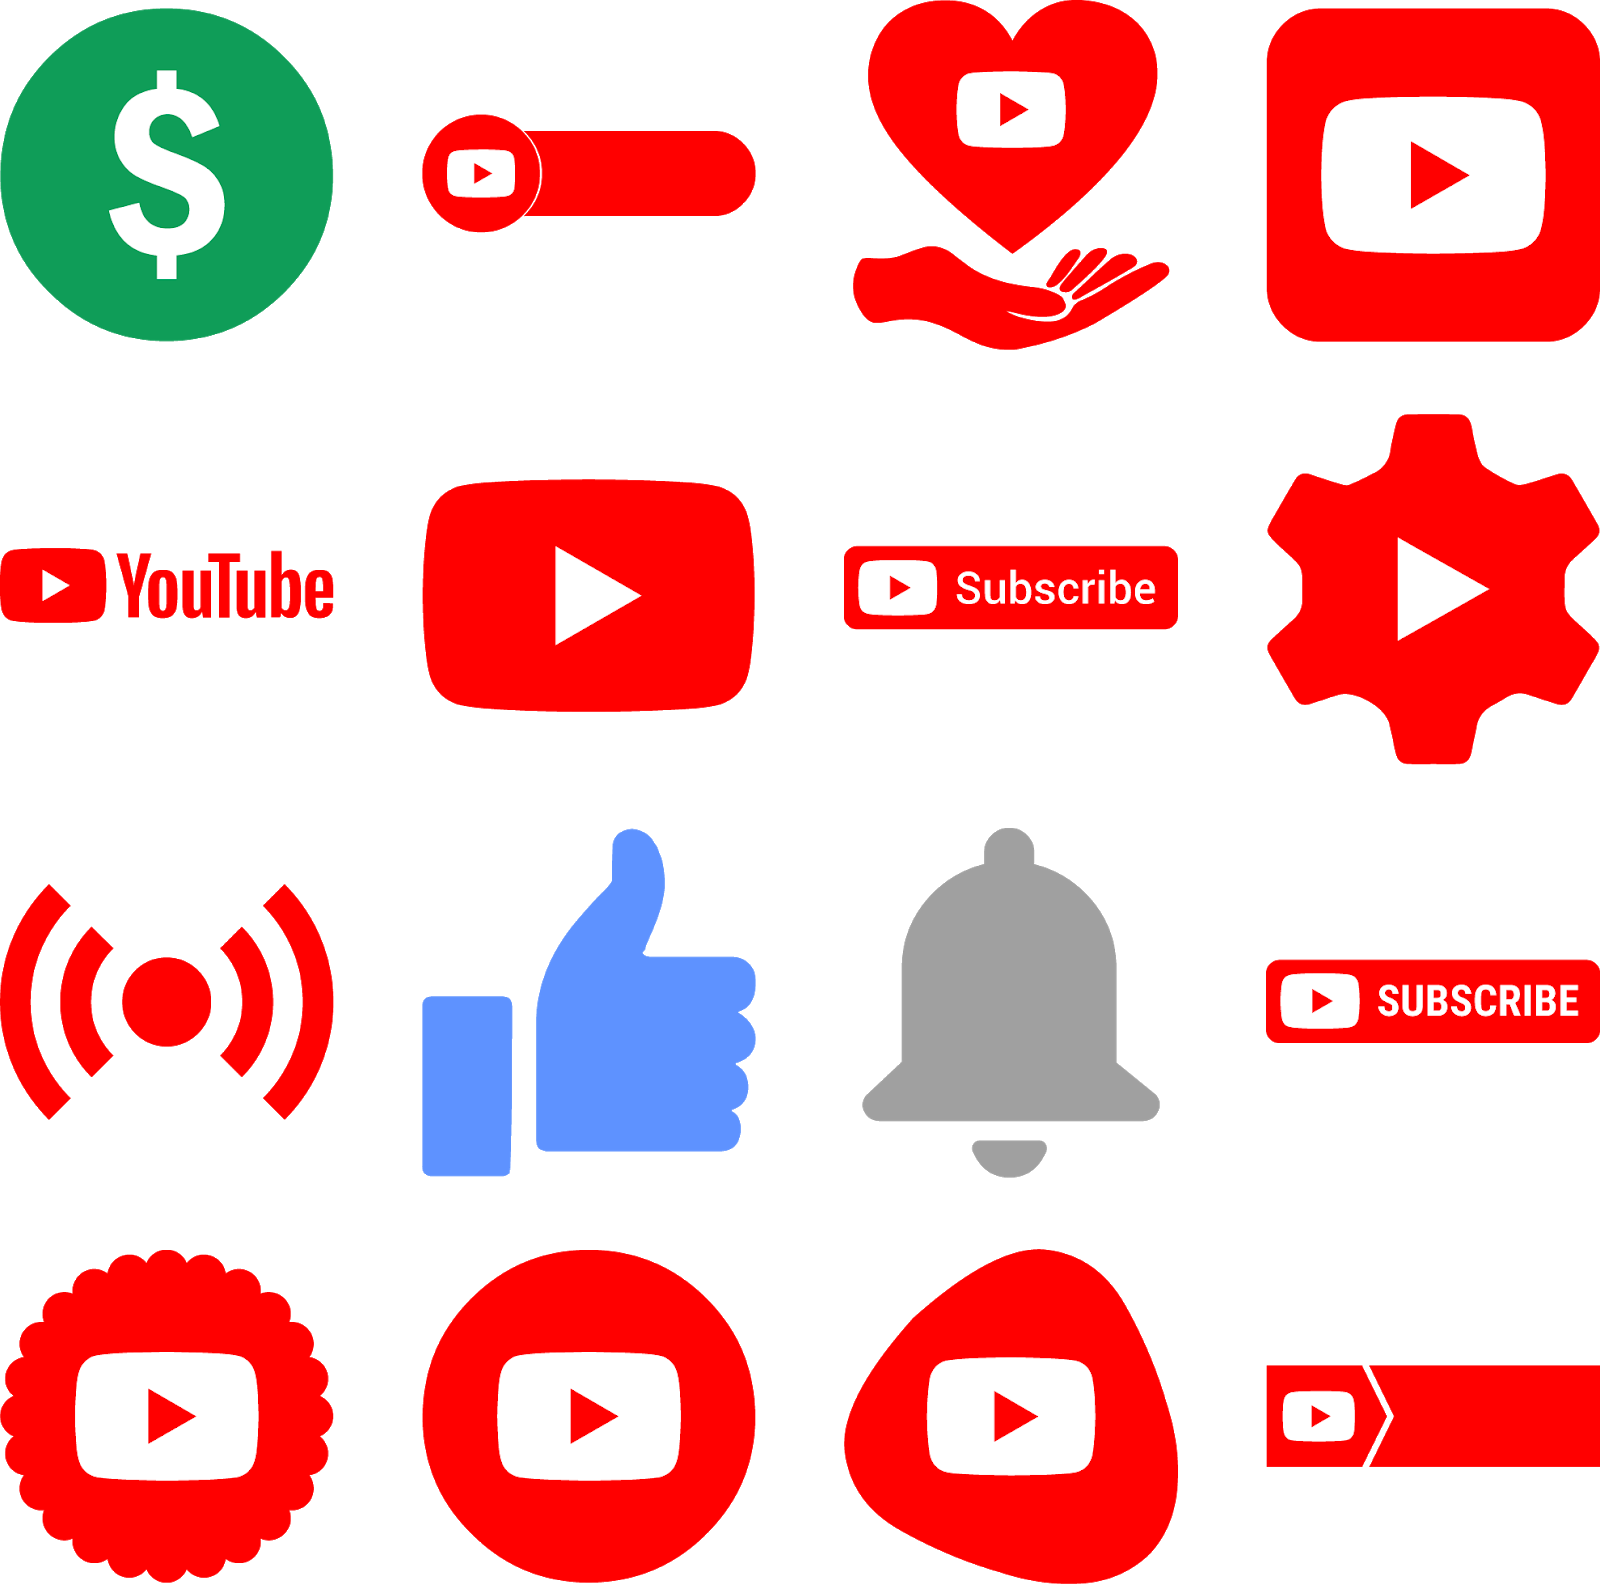 download icons logos youtube vector svg eps psd ai color.